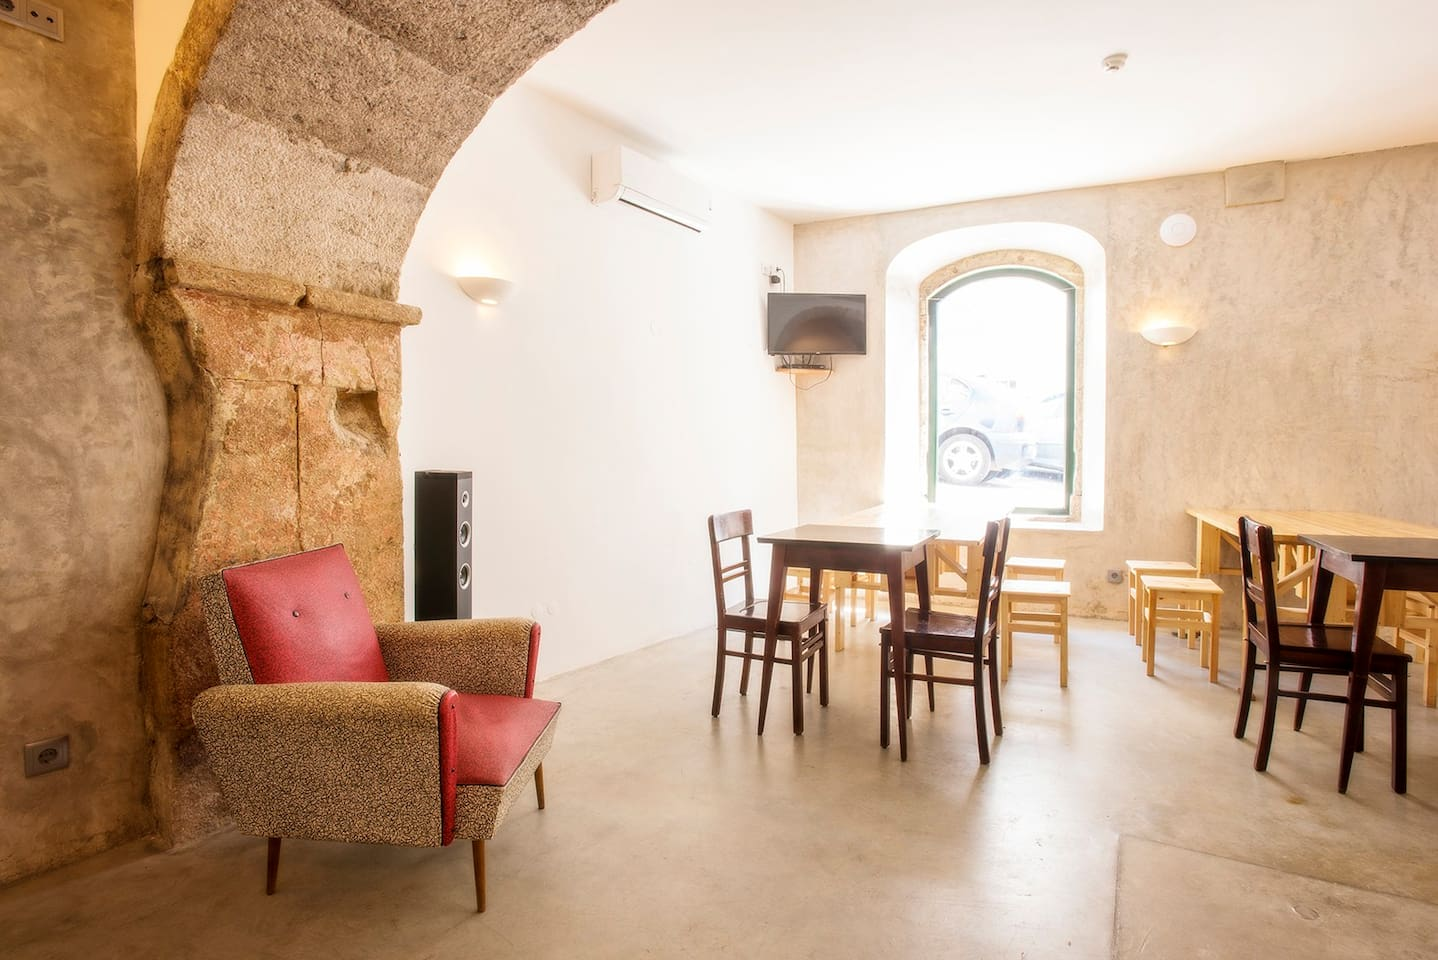 Lounge are of 100 m2 where we organise private events for our guests . Not included in the apartment´s price